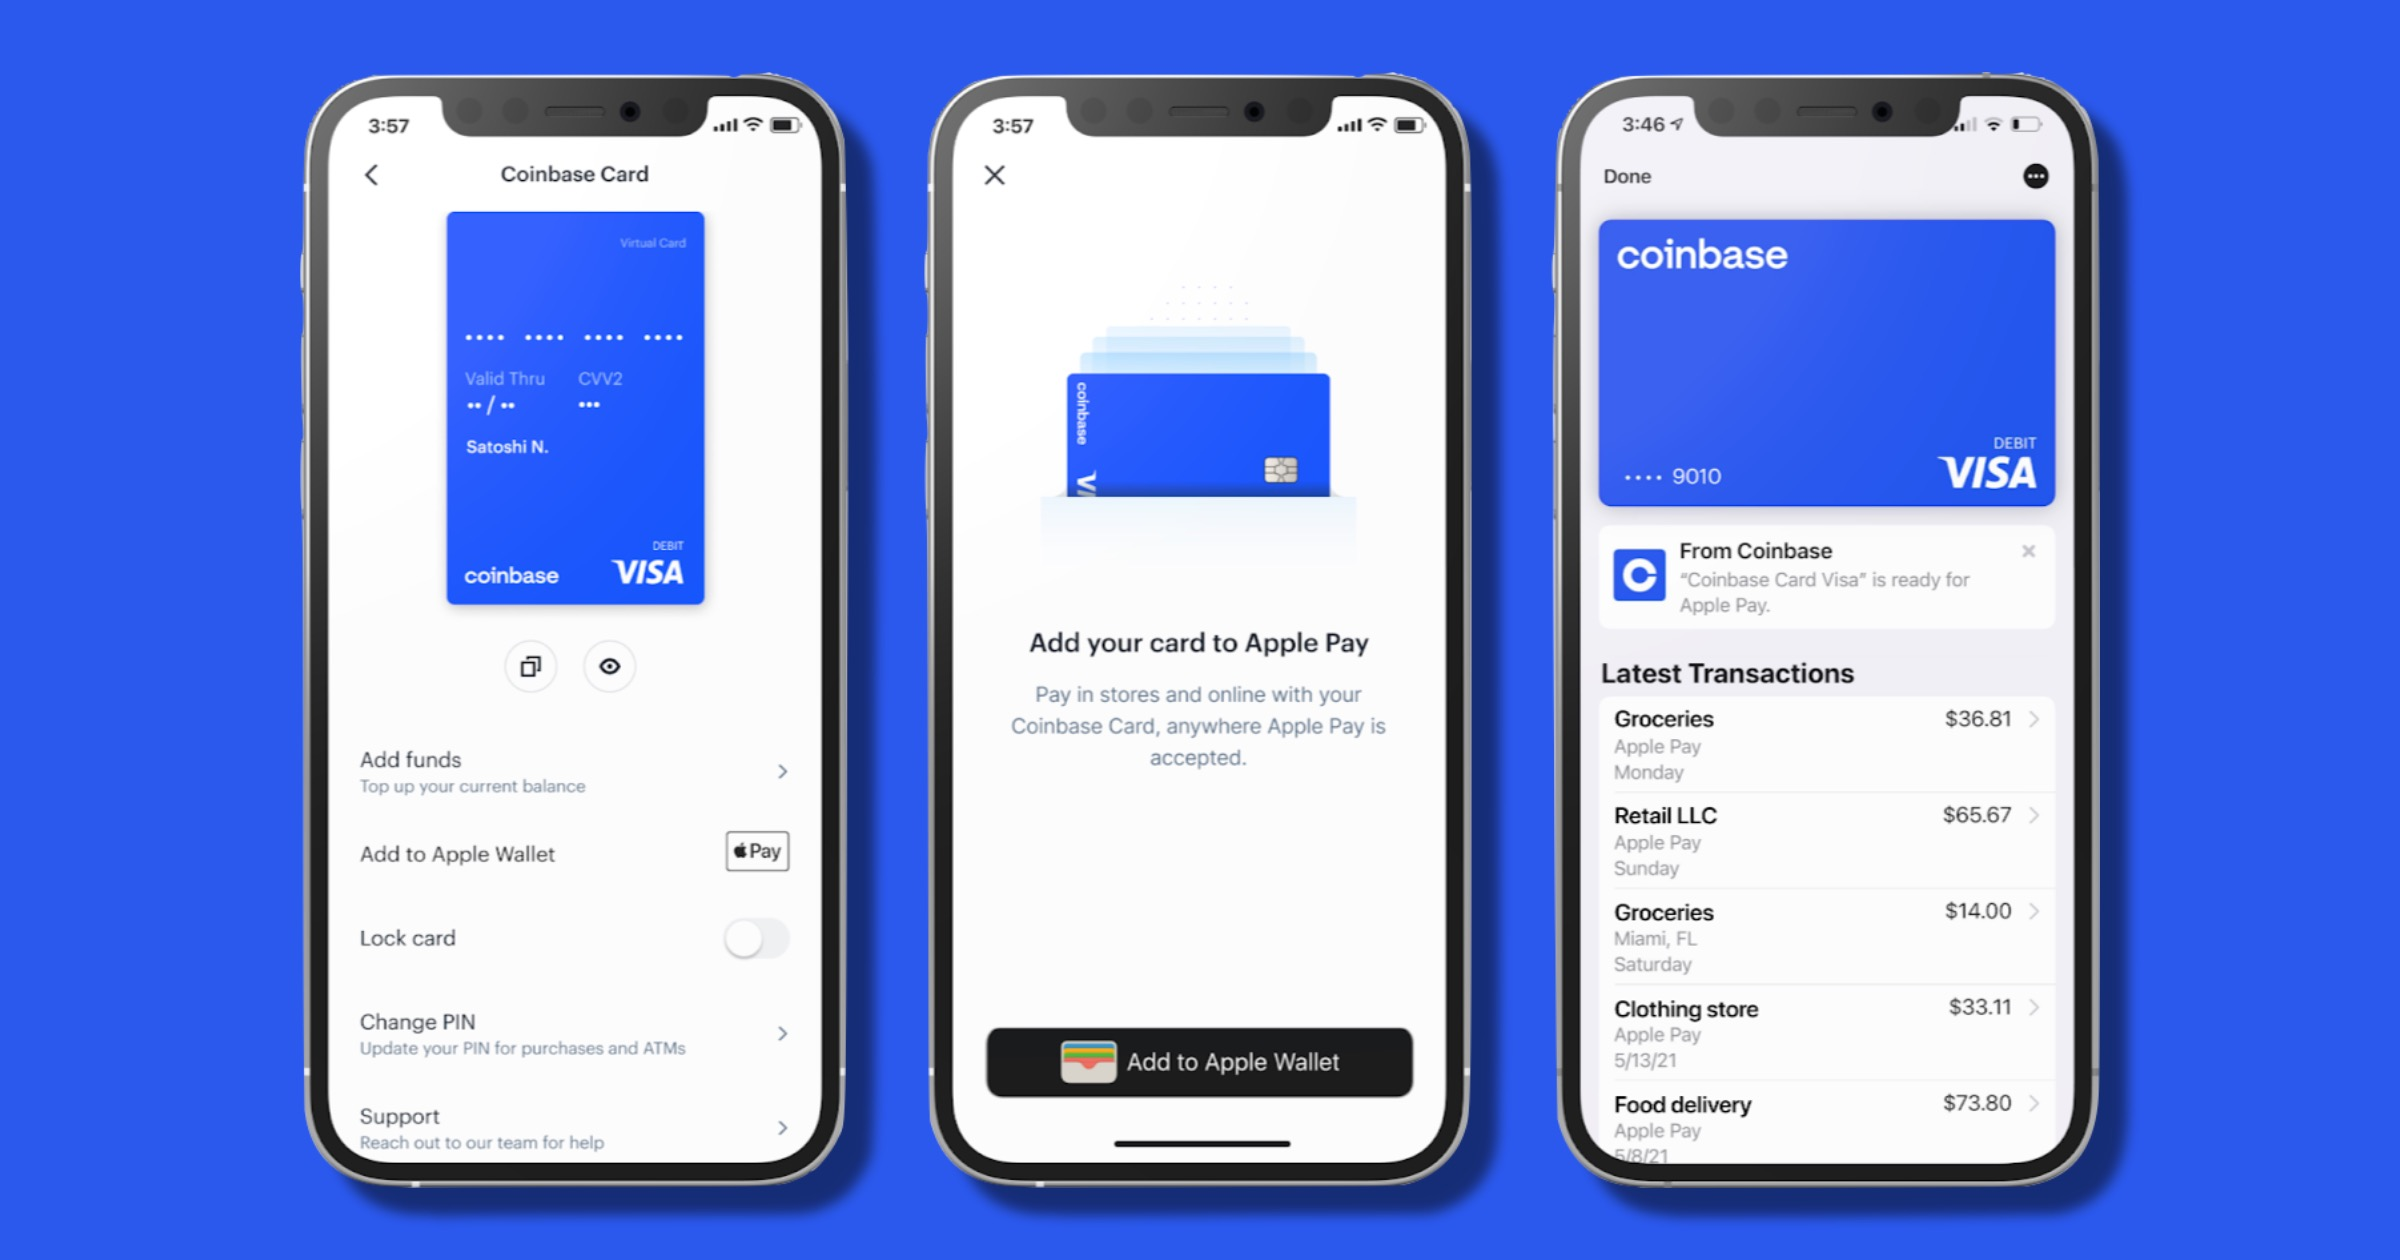 Coinbase card in apple wallet